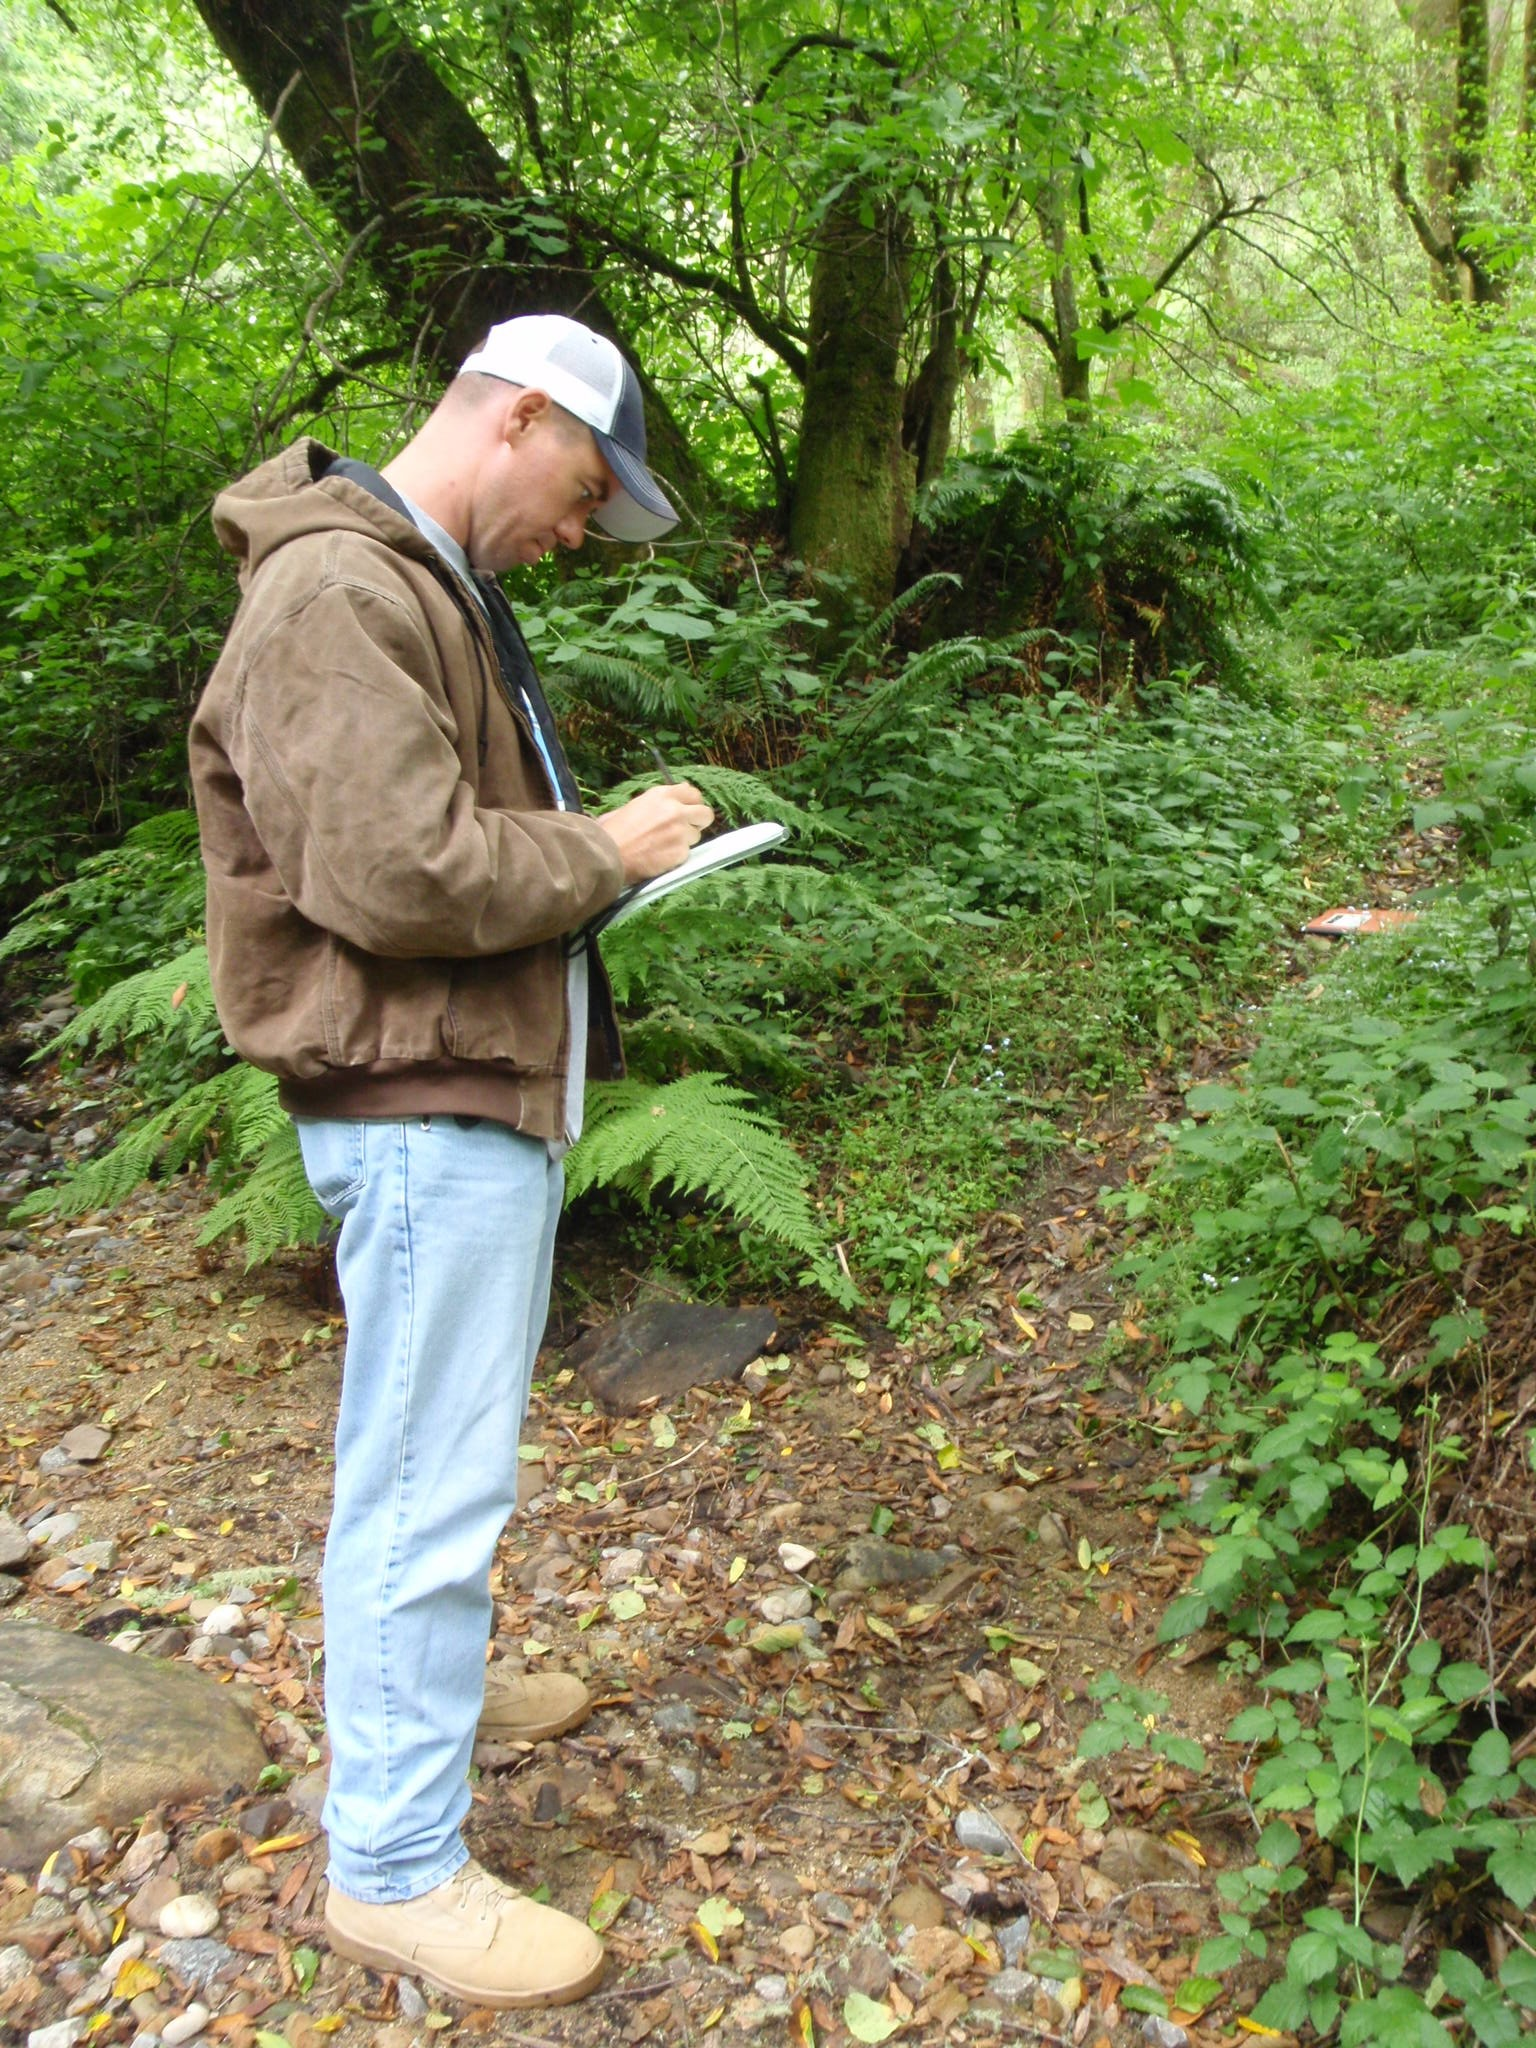 MAJ Frank Harmon takes field notes in the Santa Cruz Mountains, CA before collecting GPS data and LiDAR points